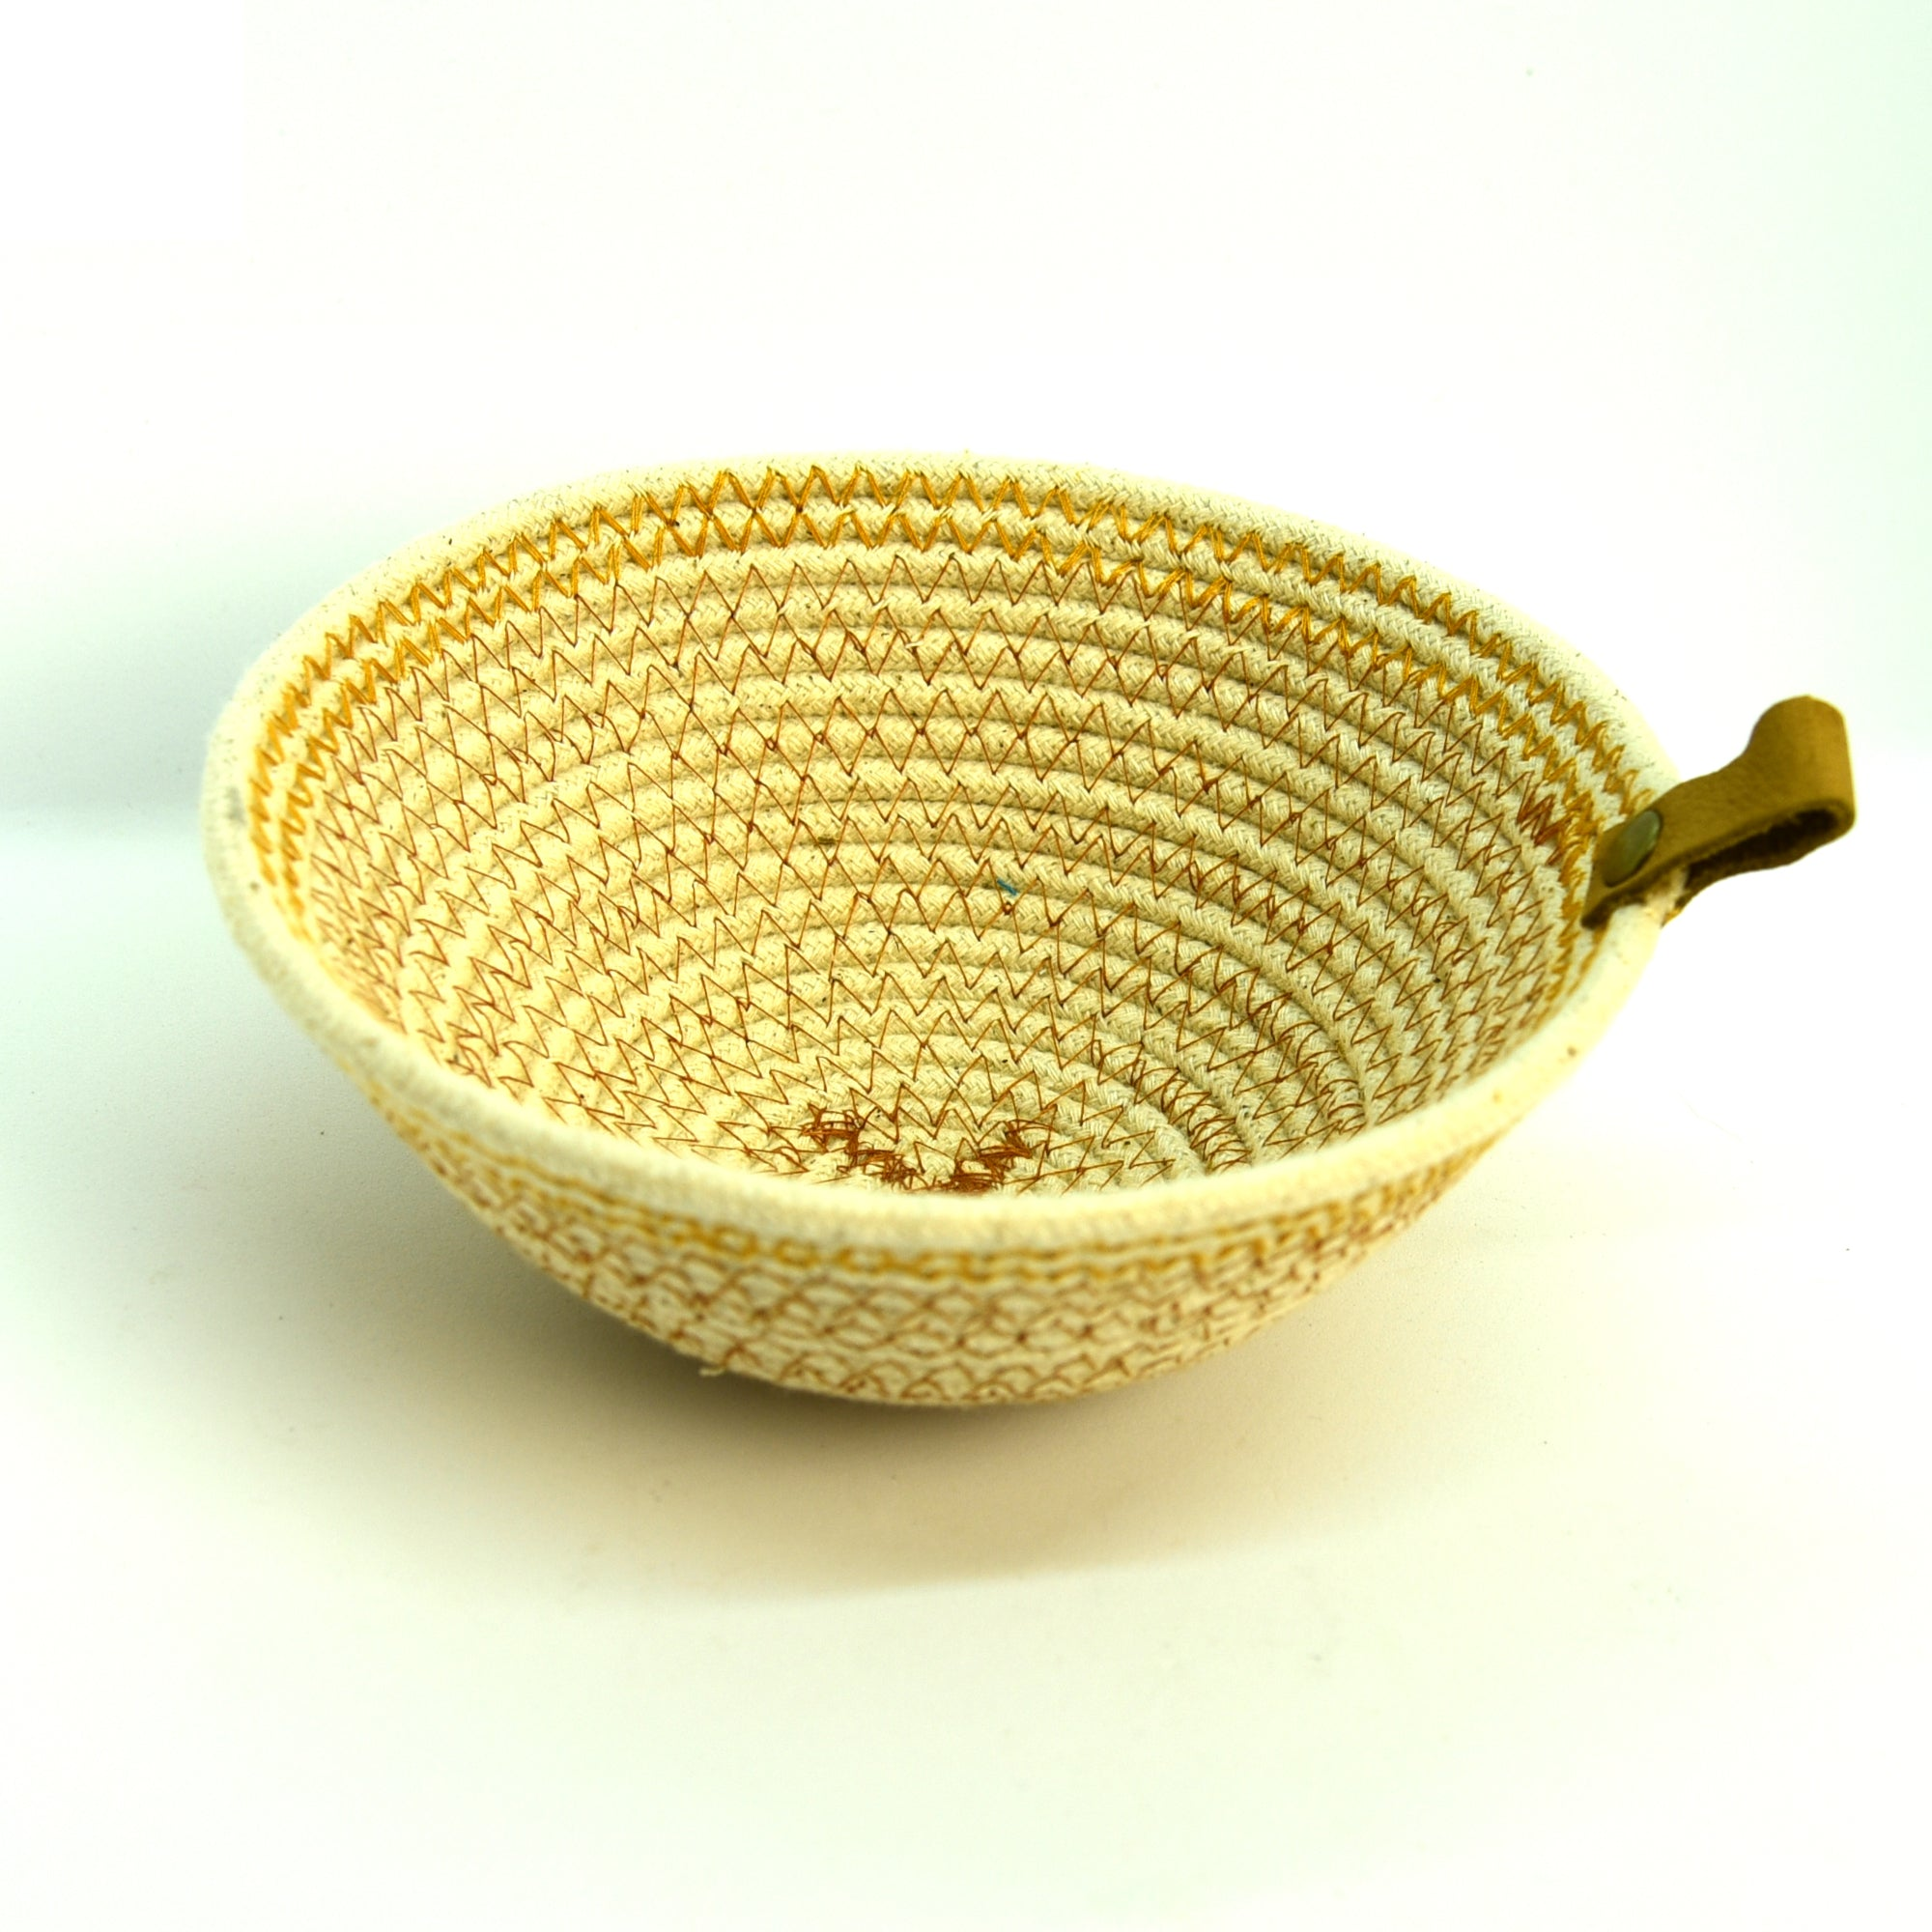 Rope Bowls - Small Brown Thread